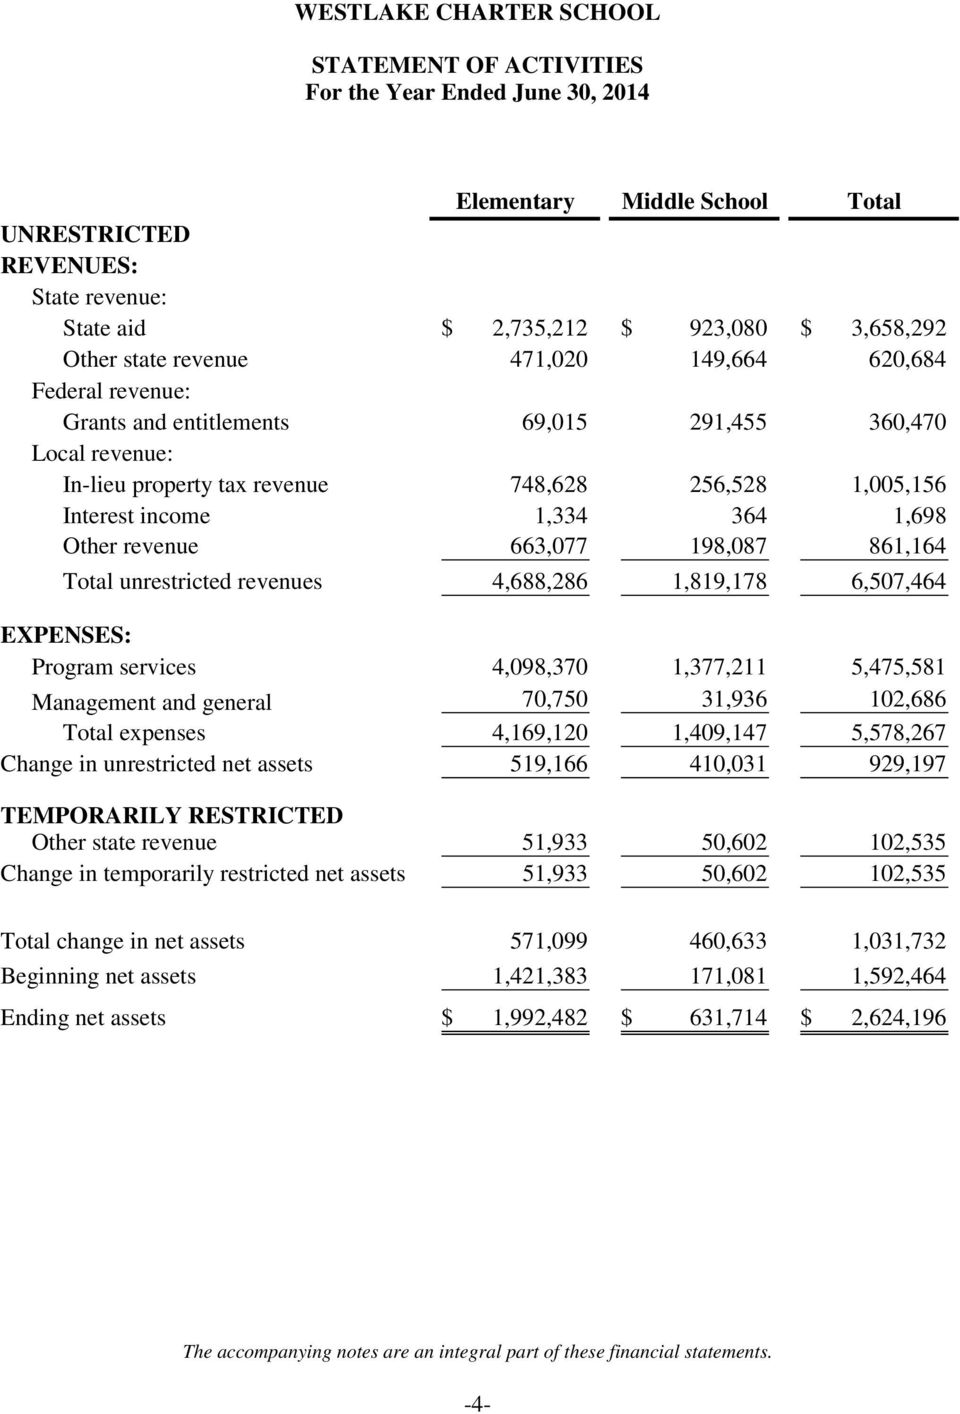 unrestricted revenues 4,688,286 1,819,178 6,507,464 EXPENSES: Program services 4,098,370 1,377,211 5,475,581 Management and general 70,750 31,936 102,686 Total expenses 4,169,120 1,409,147 5,578,267